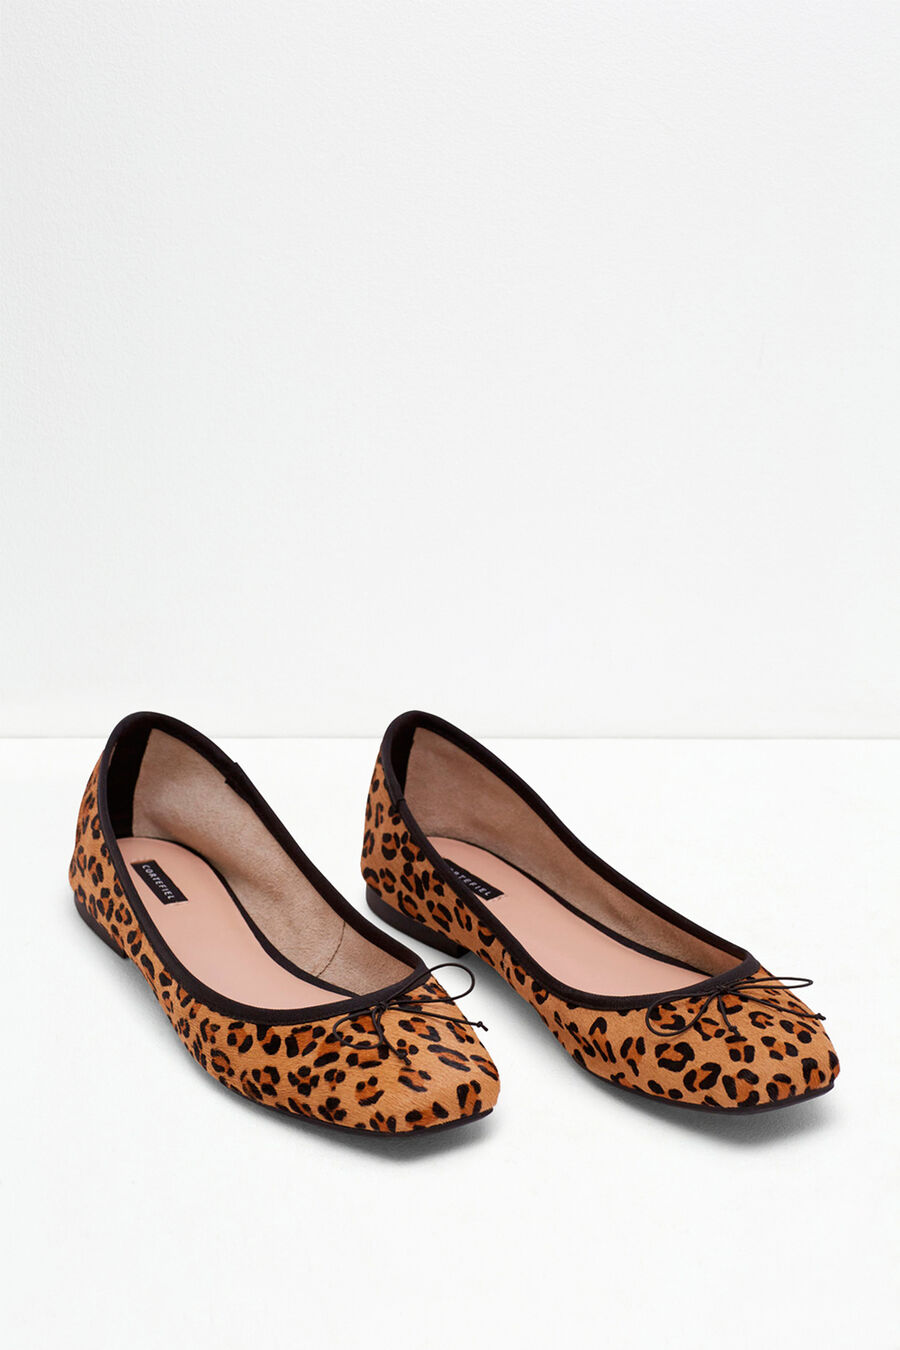 Classic leather ballet pumps